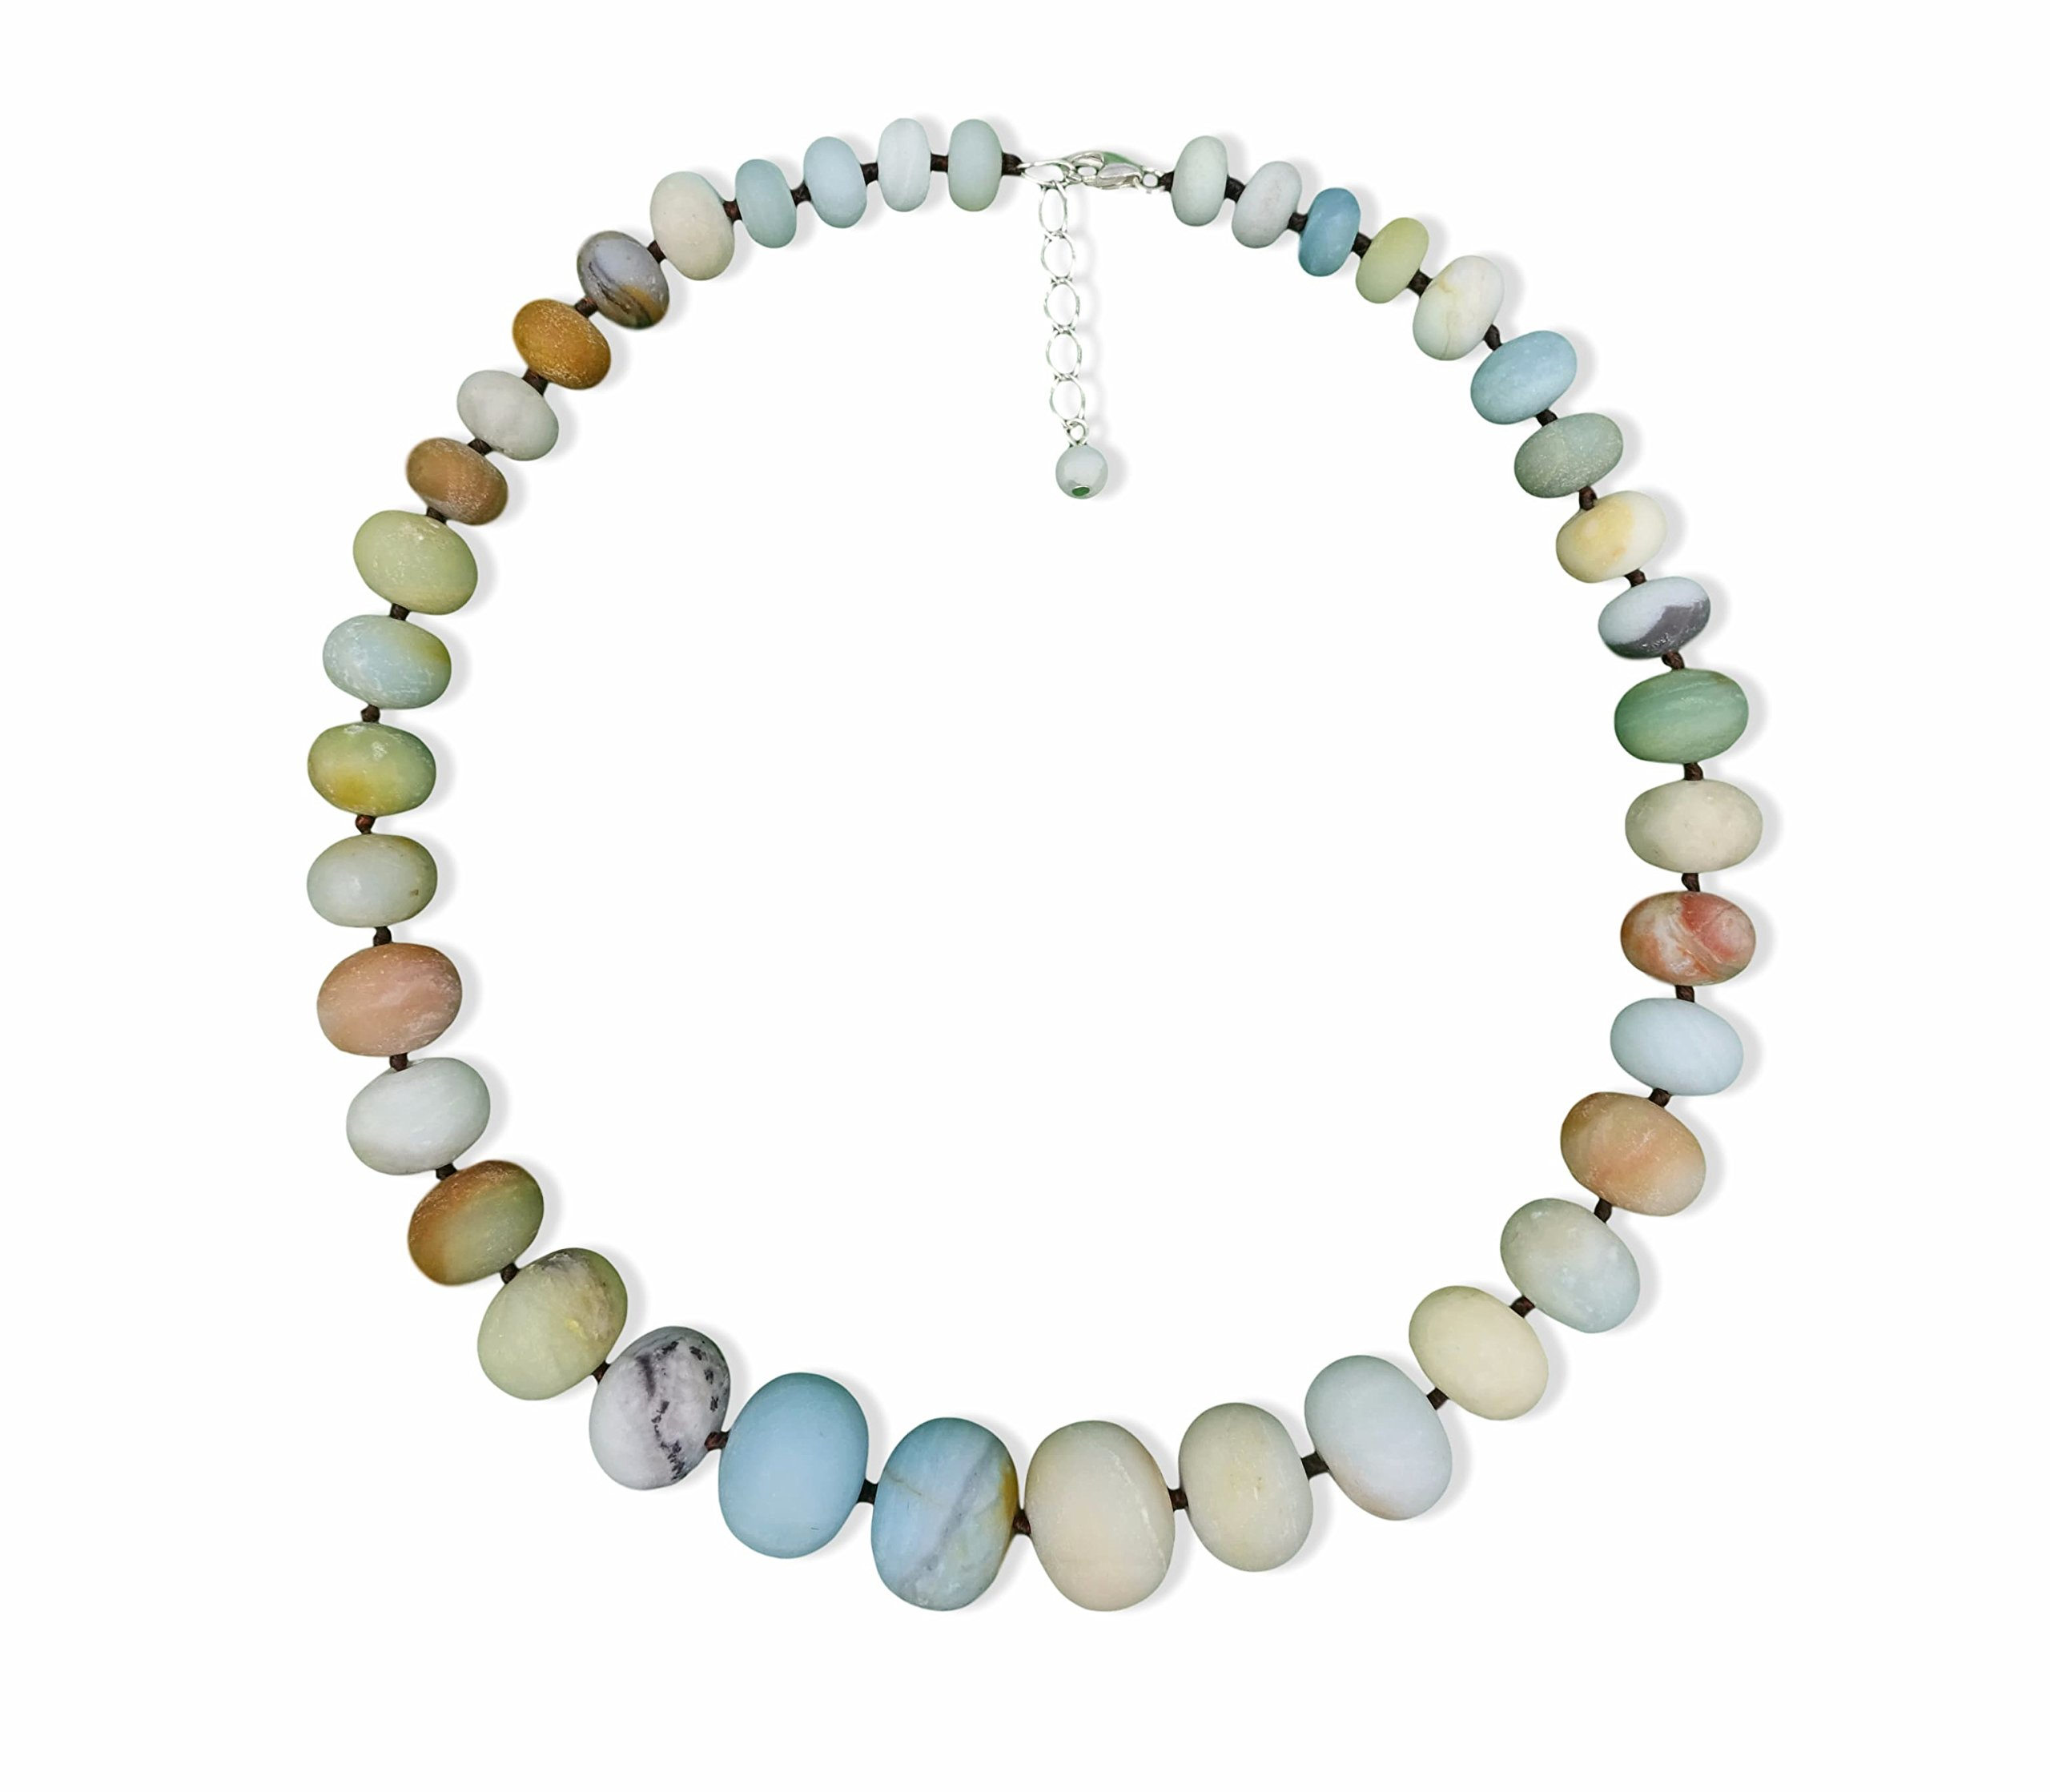 Natural Matte Amazonite Graduated Beaded Statement Necklace, 19'' Long.